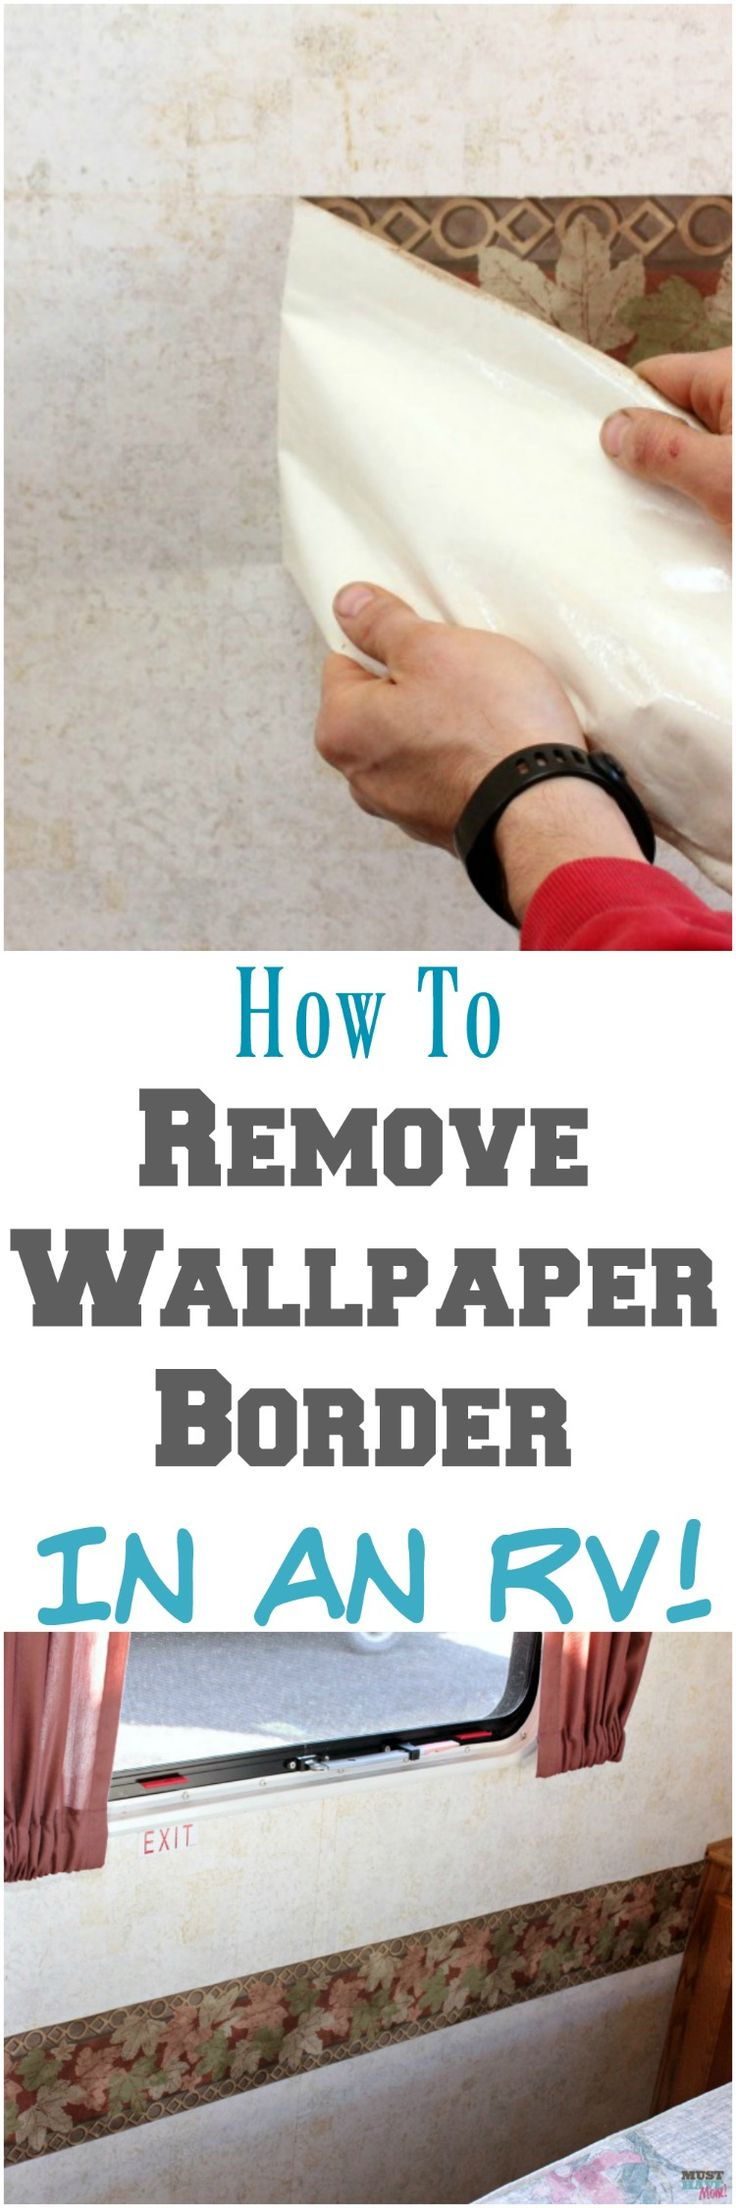 25 best ideas about how to remove wallpaper on pinterest